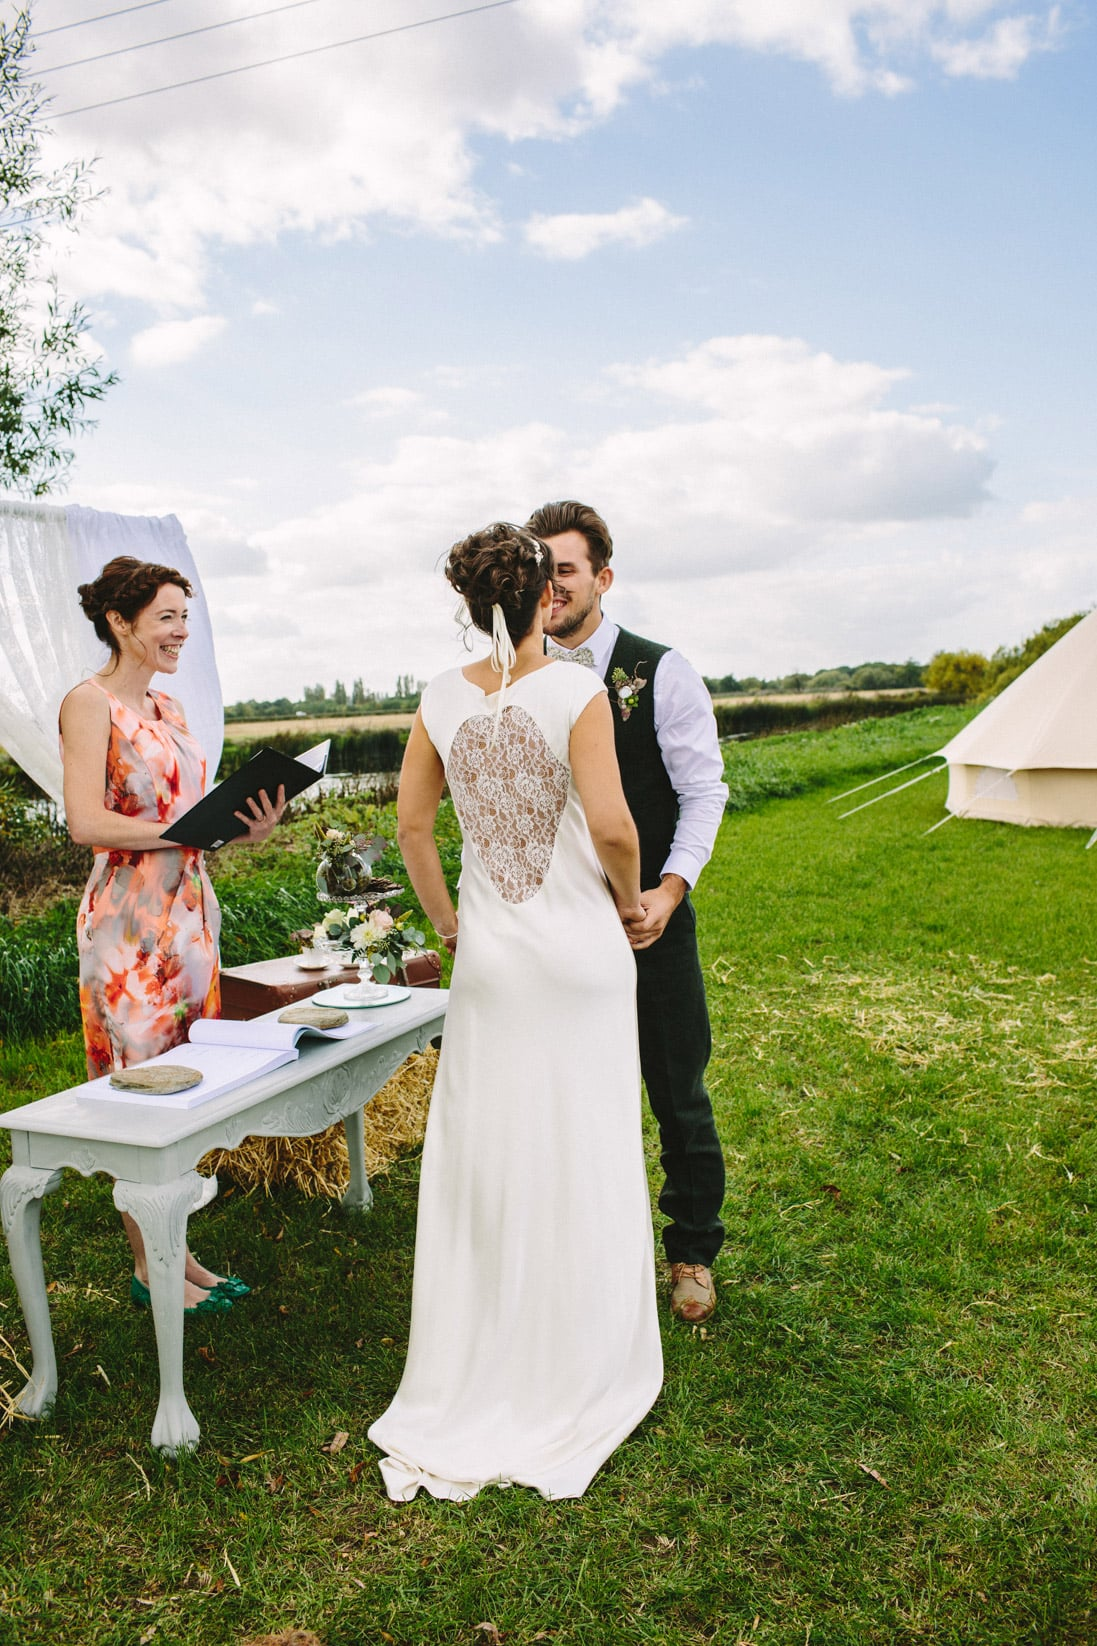 Swarkestone Farm, Derbyshire. A Sami Tipi exclusive venue